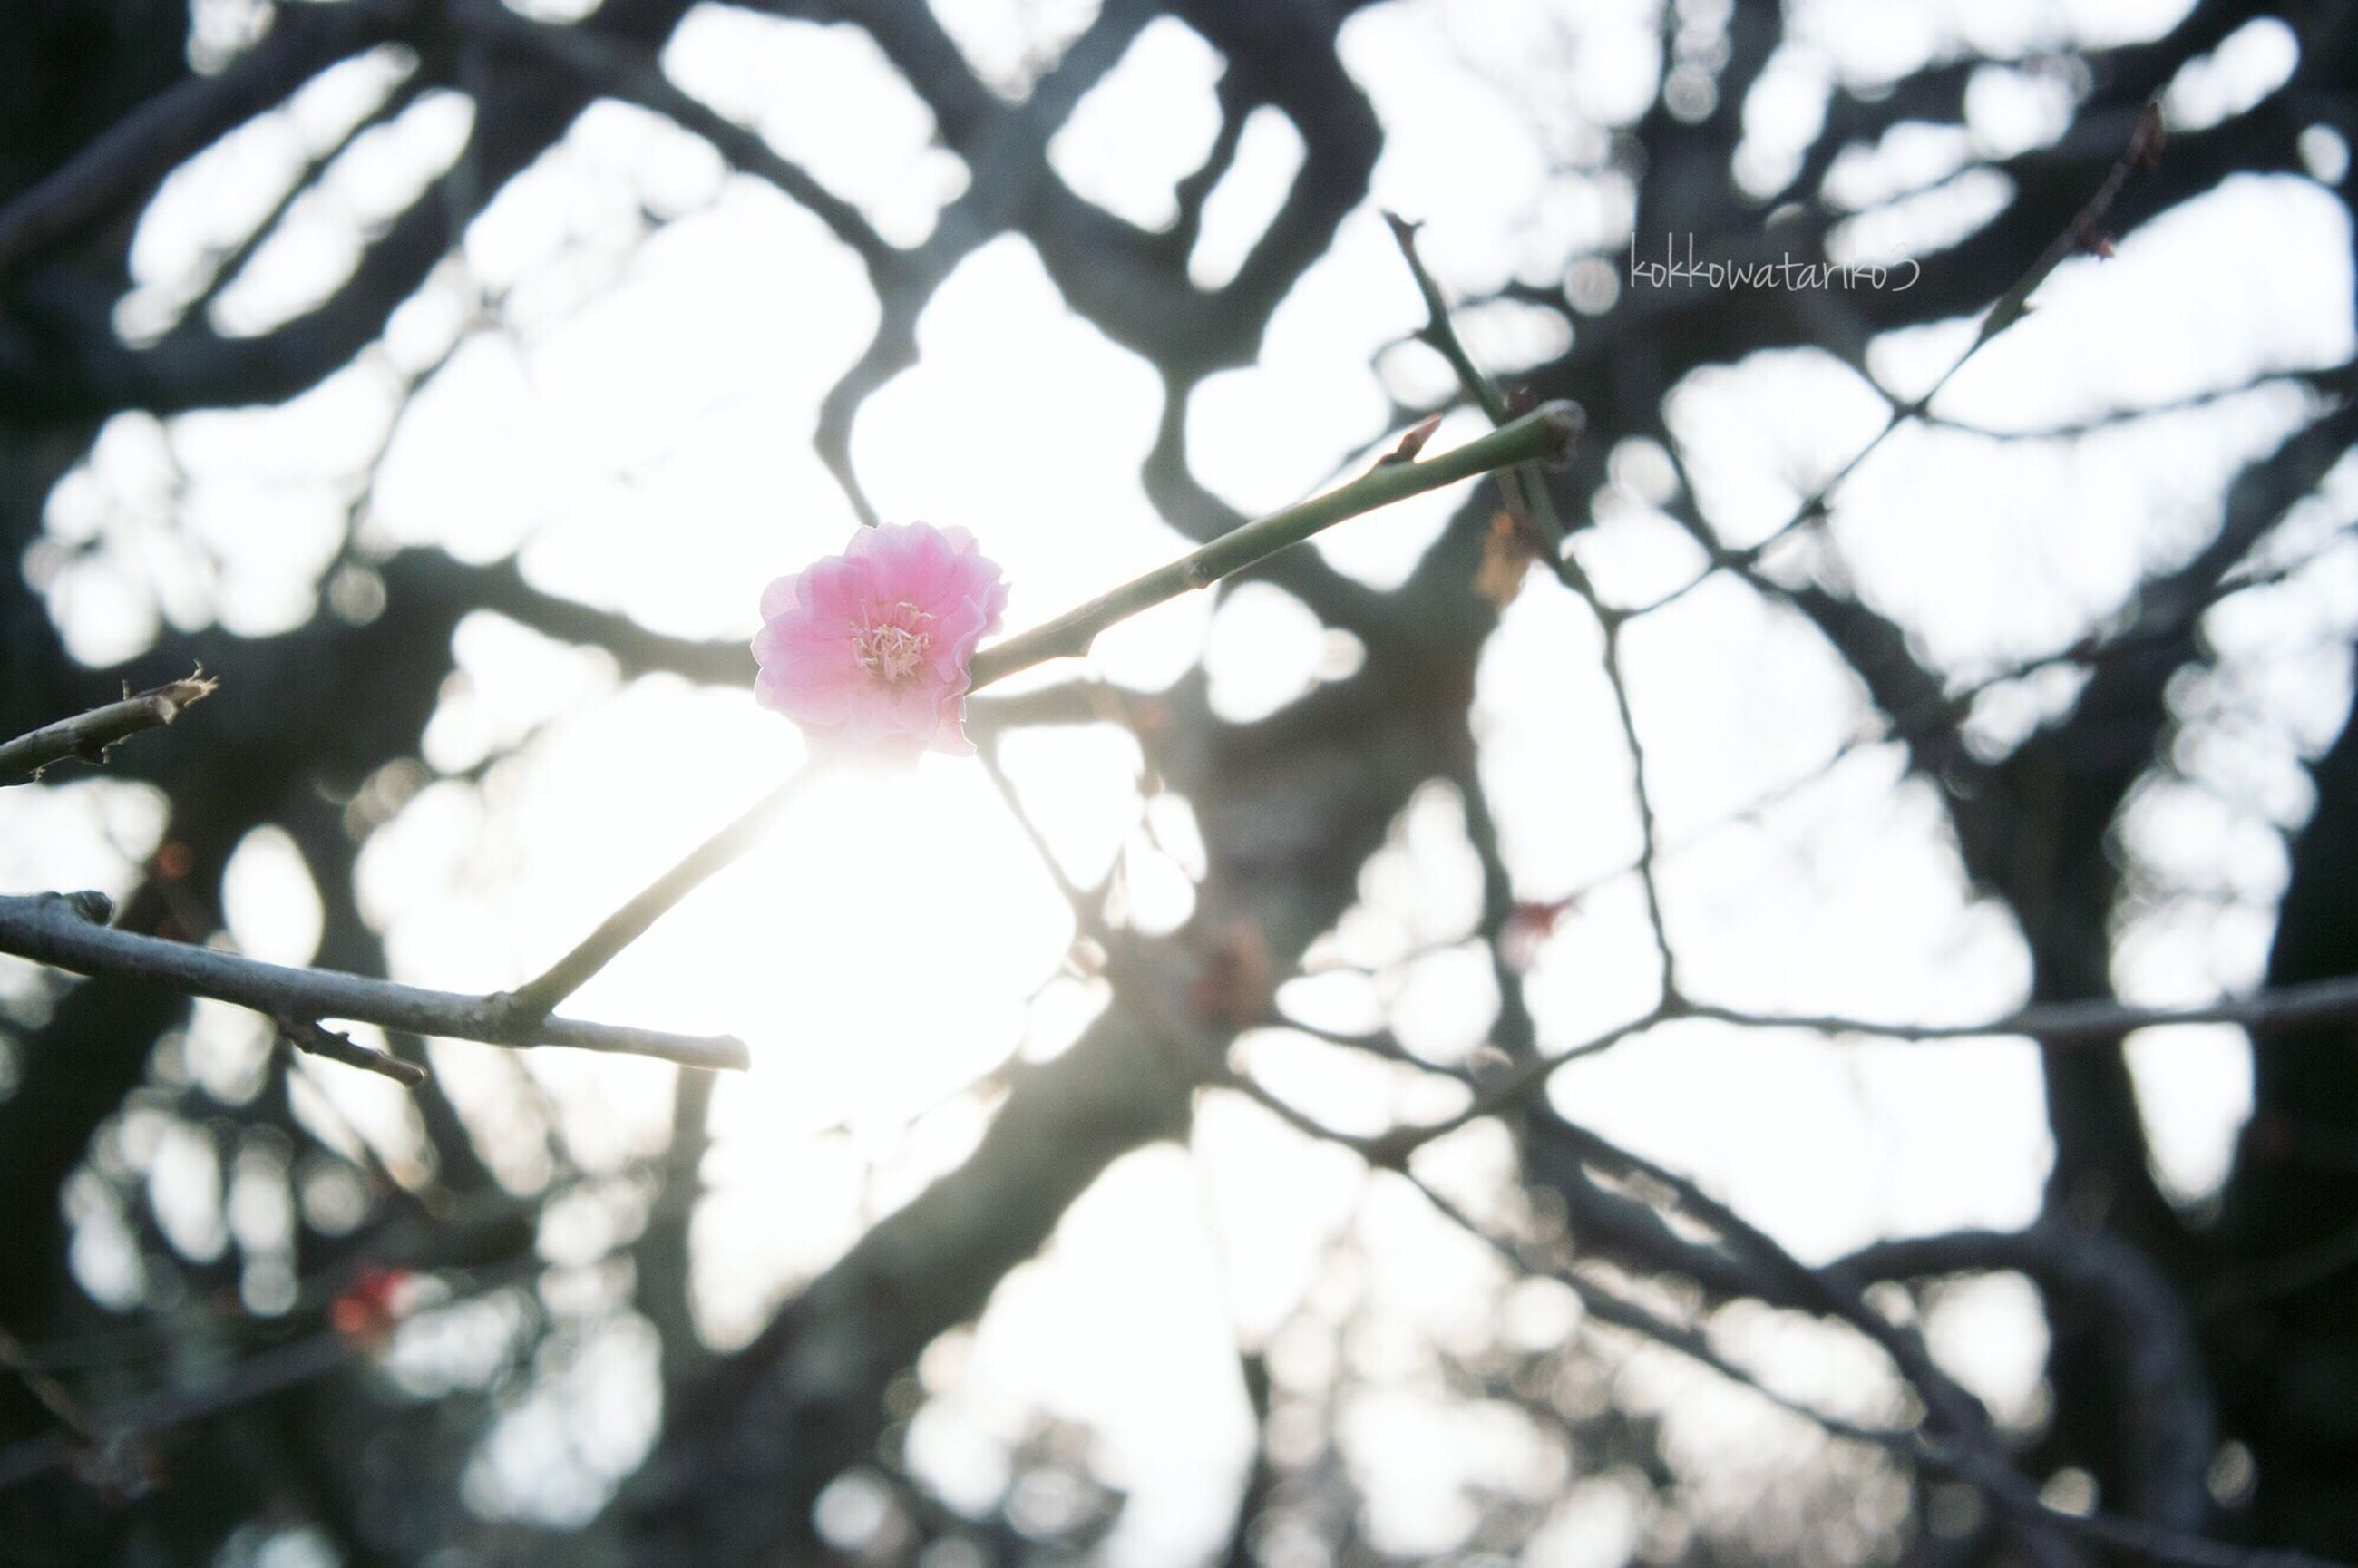 flower, nature, growth, beauty in nature, petal, pink color, tree, close-up, no people, fragility, flower head, focus on foreground, low angle view, sky, branch, outdoors, day, blooming, freshness, plum blossom